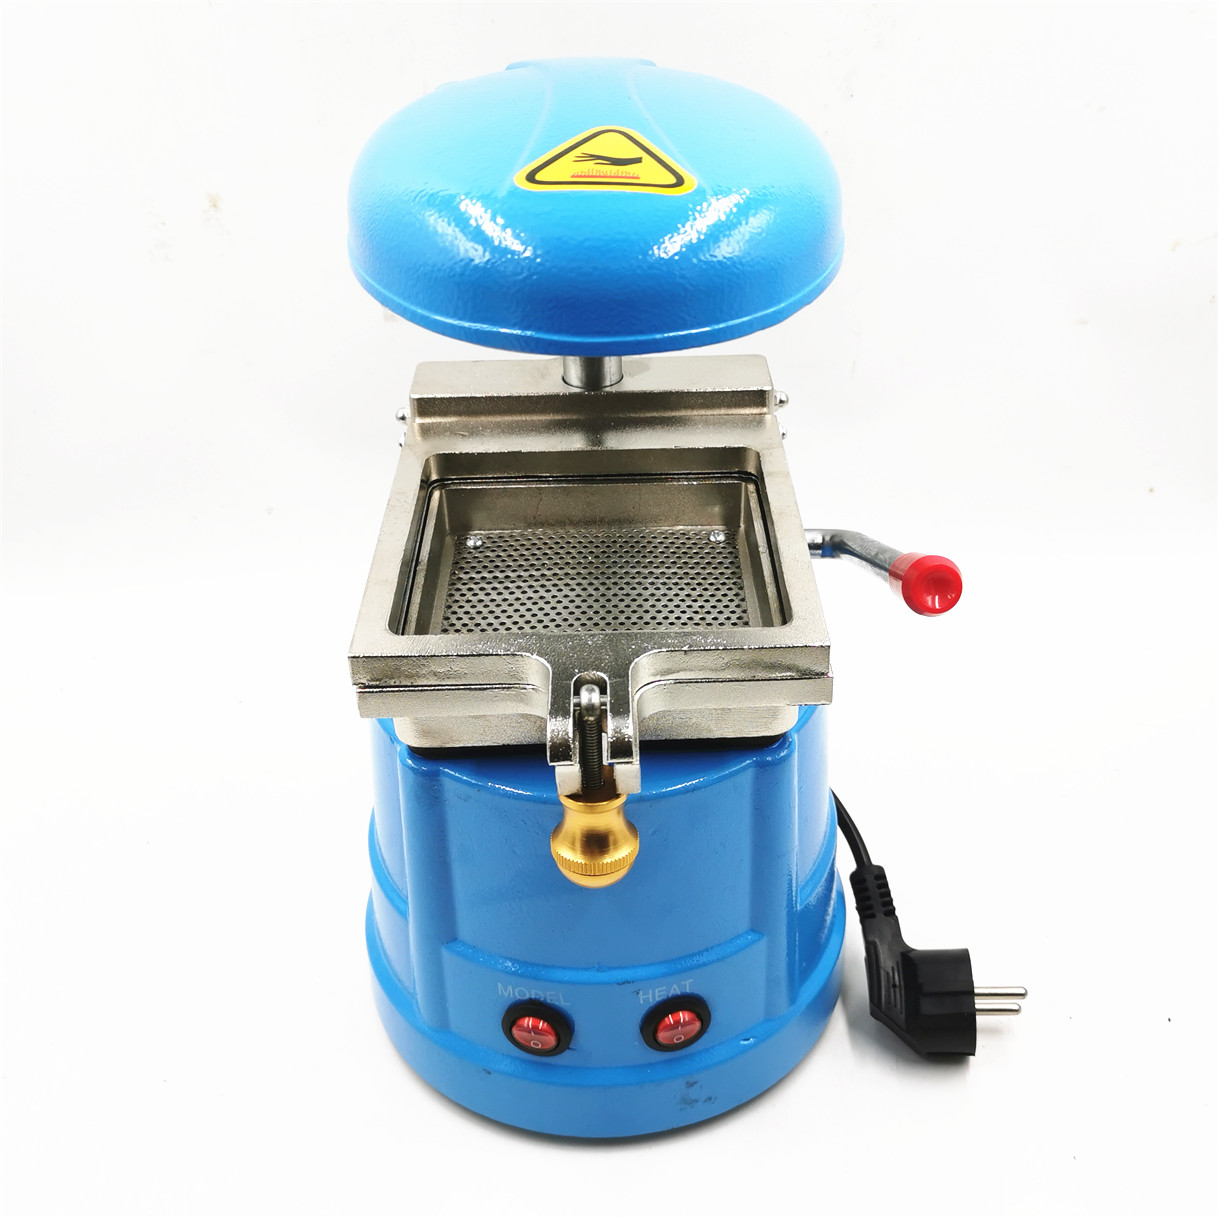 Dental Laminator Dental Lab Equipment Small Dental Vacuum Former Vacuum Forming And Molding Machine Oral Material Making Tool